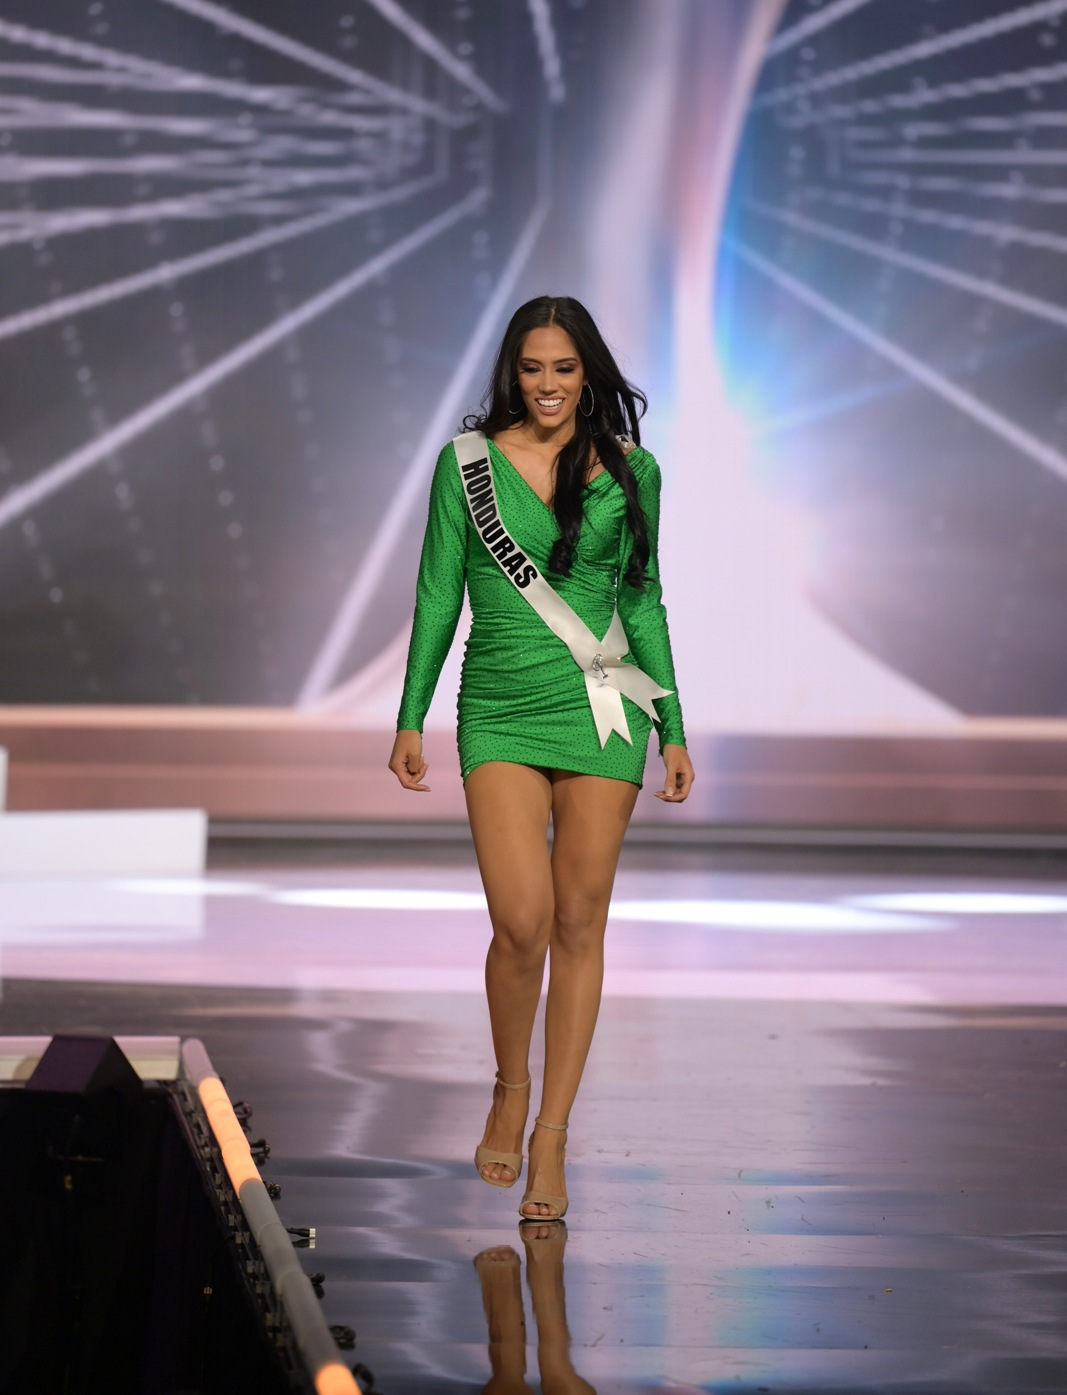 69th Miss Universe Competition® - Preliminary Competition - Opening in Sherri Hill 45